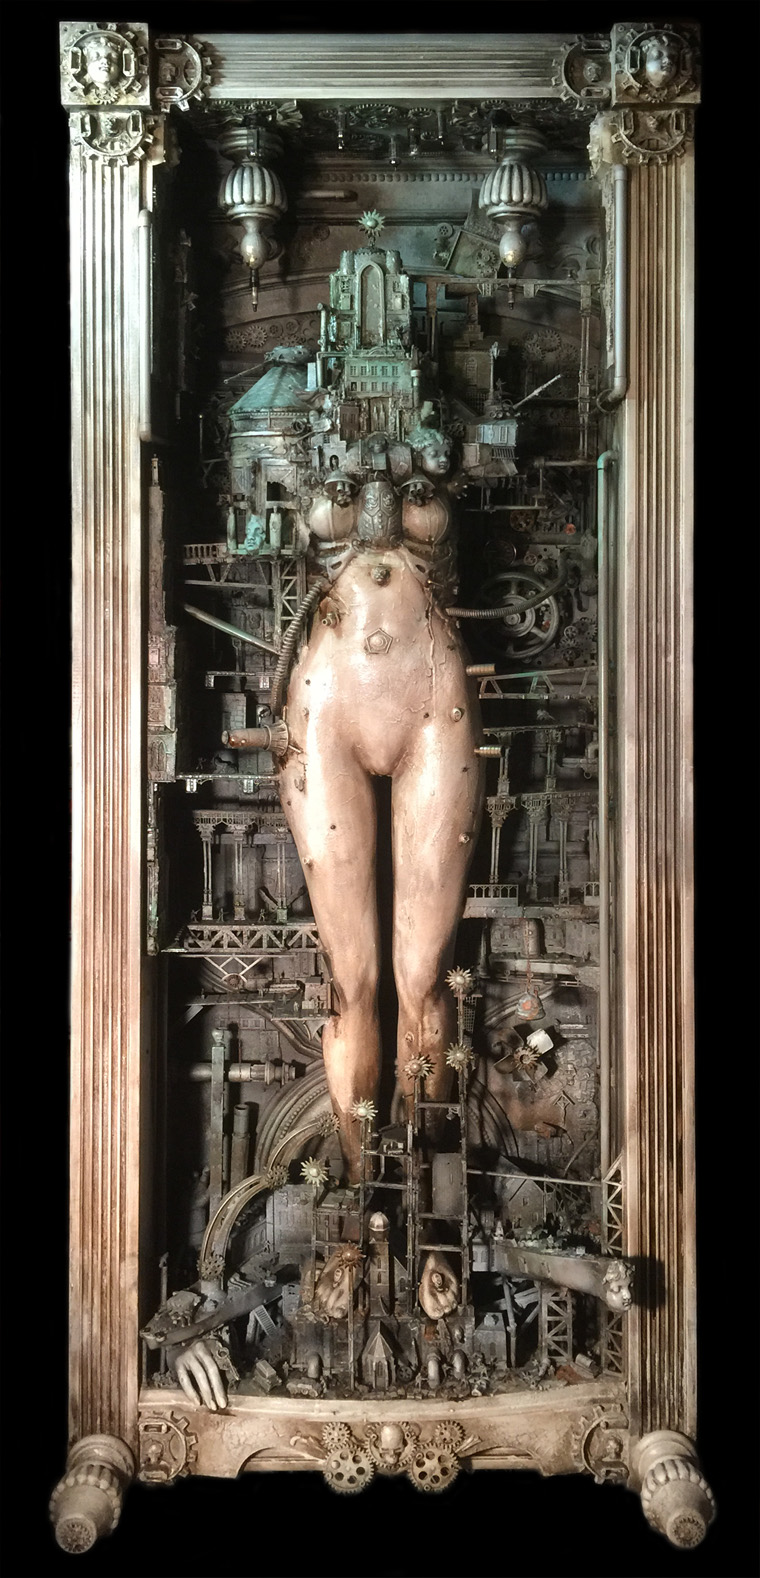 "Krystopher Sapp - Metropolis Based on ""Metropolis"", fiber glass body, resin castings, with frame built from old diner table and bed frame, car parts and sewing machine parts, 24x96x10"" $10,000"